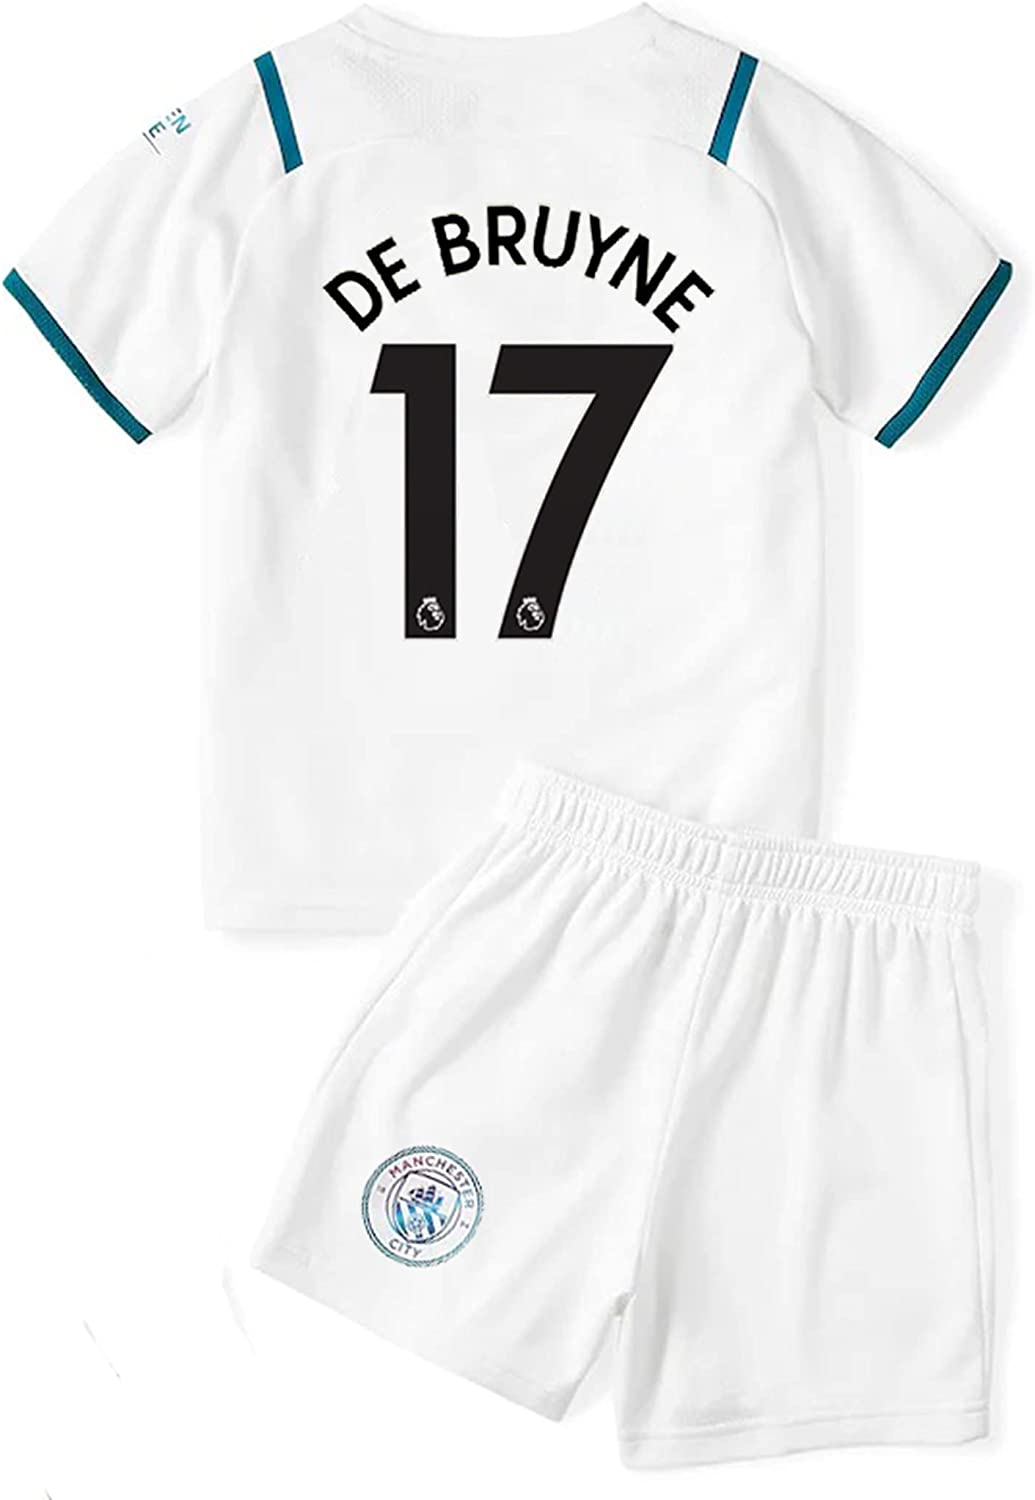 Ruhdxcw 2021-2022 New Season DE Mancheste #17 Max 68% OFF Youths Don't miss the campaign Kids Bruyne